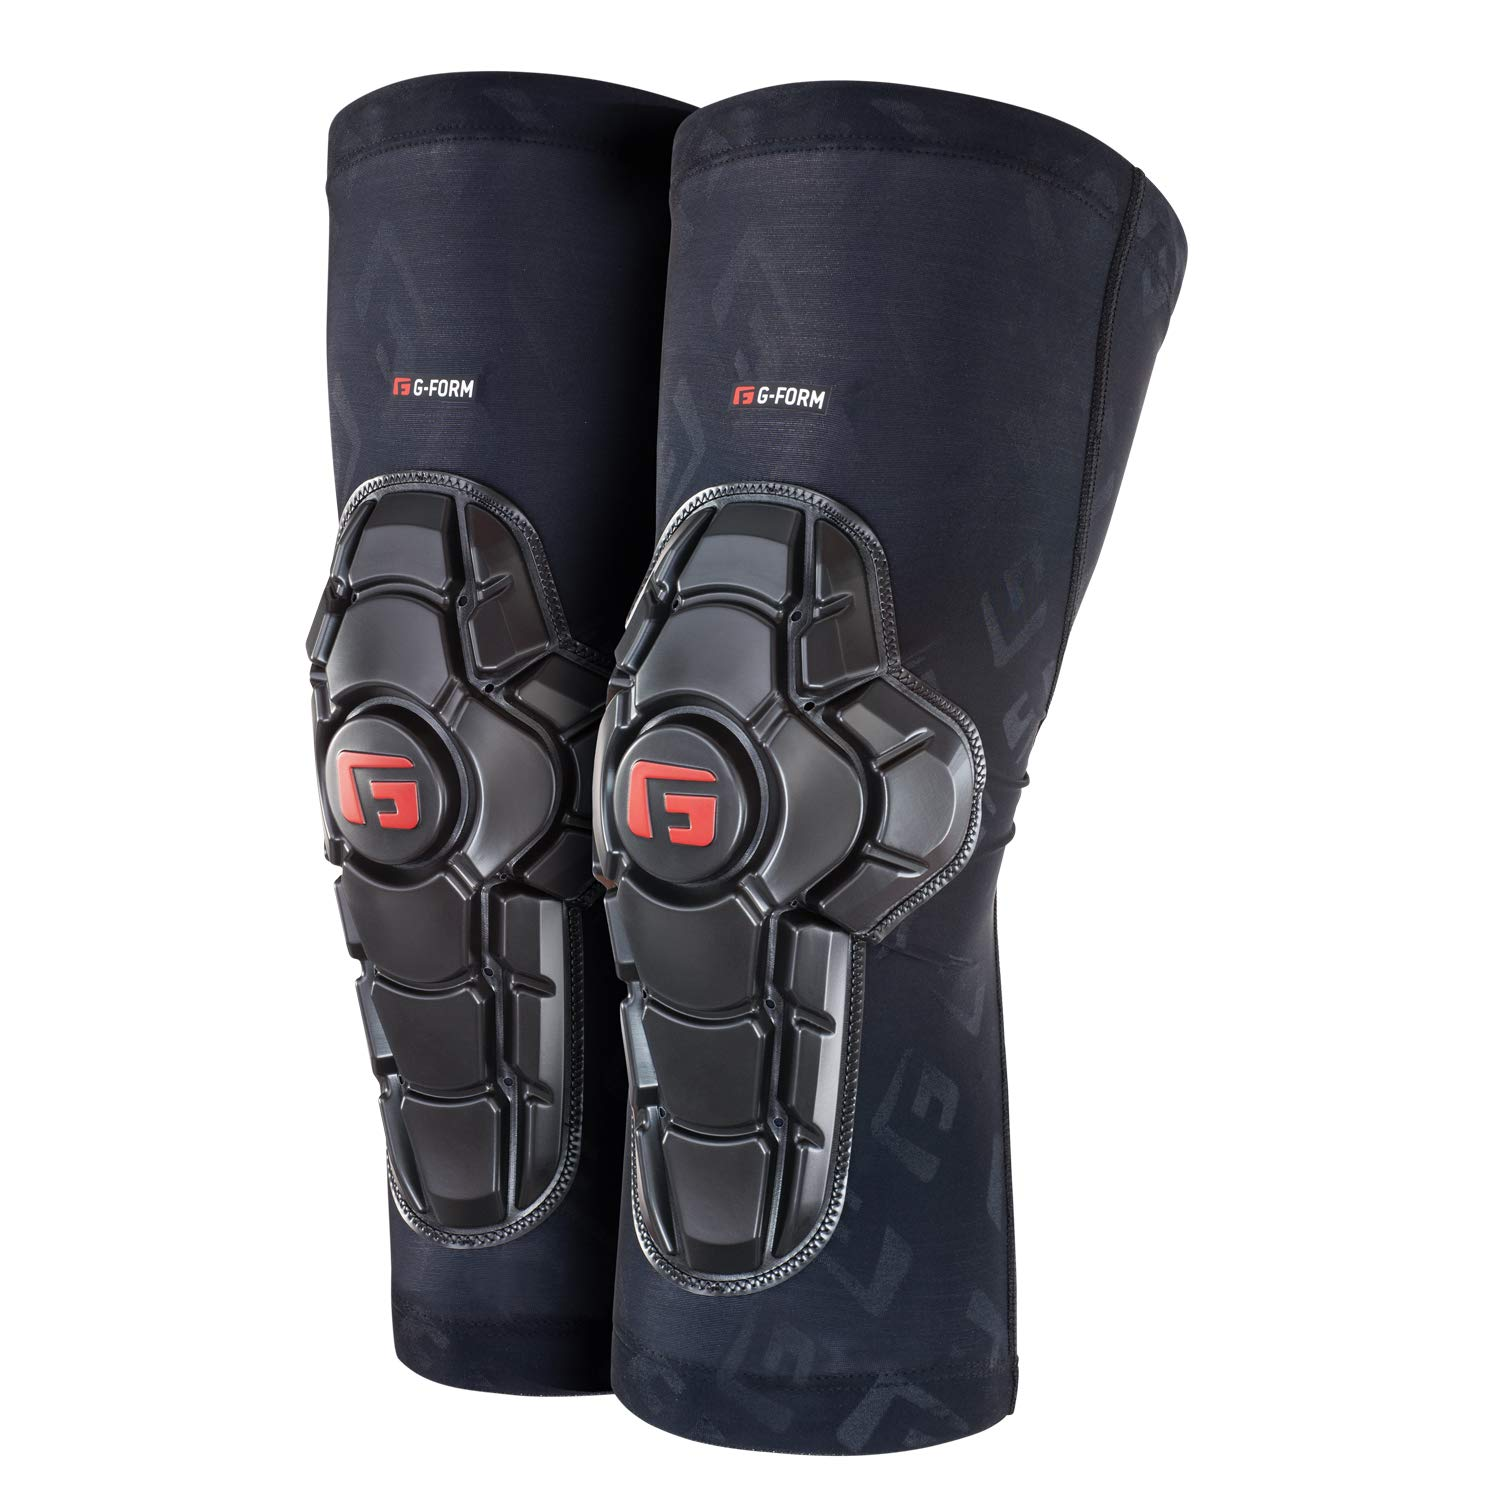 G-Form Pro X2 Knee Pad(1 Pair), Black Logo, Adult Small by G-Form